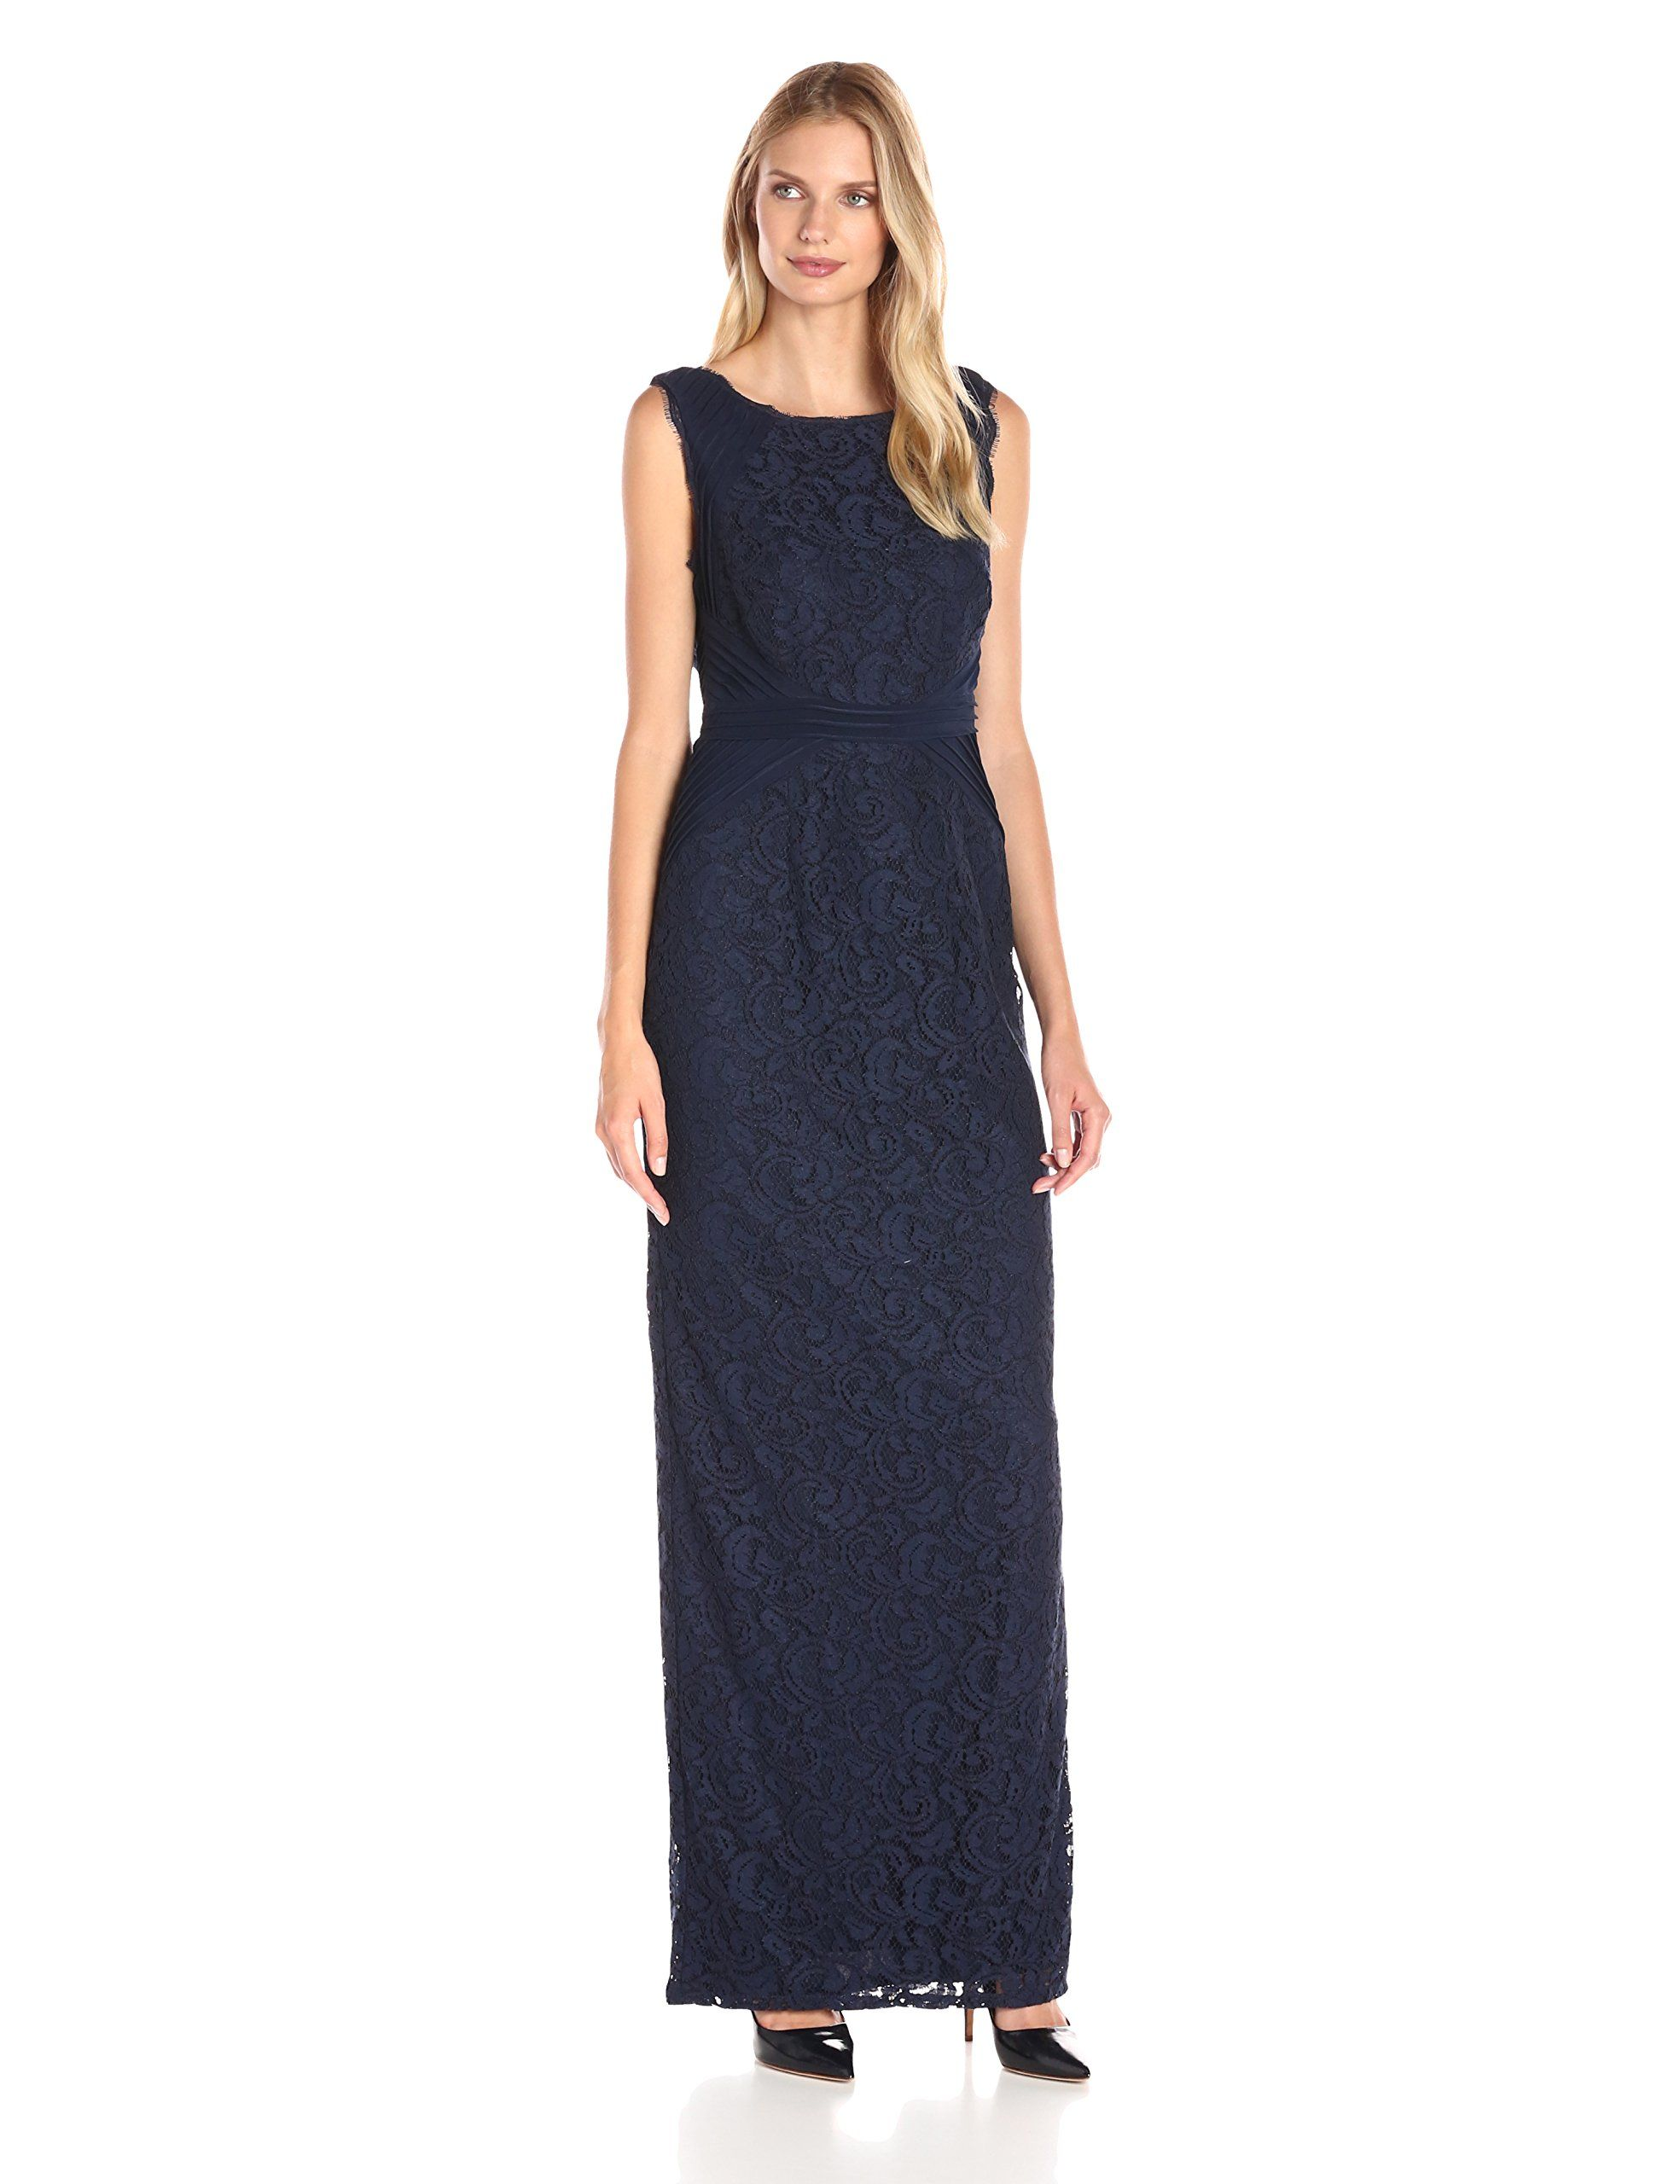 294e37195e731 Adrianna Papell Women s Sleeveless Jersey and Lace Gown with Waist Detail